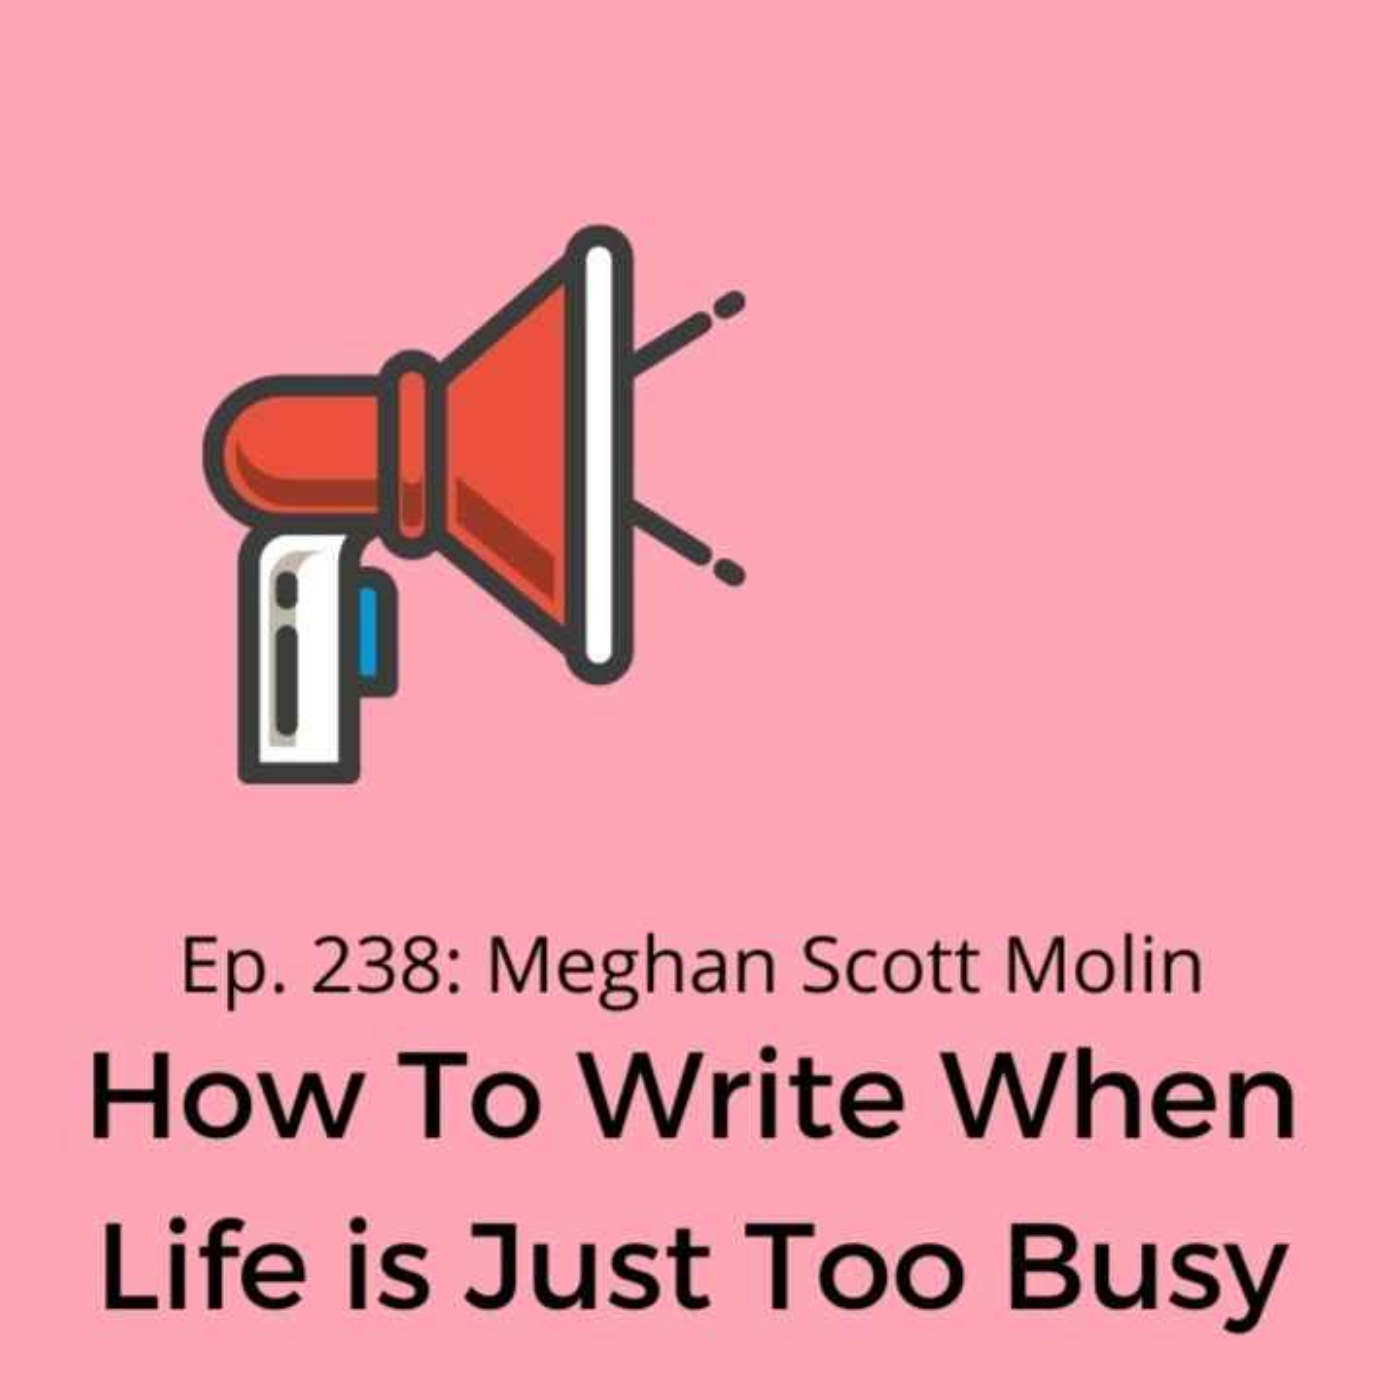 Ep. 238: Meghan Scott Molin on How To Write When Life is Just Too Busy